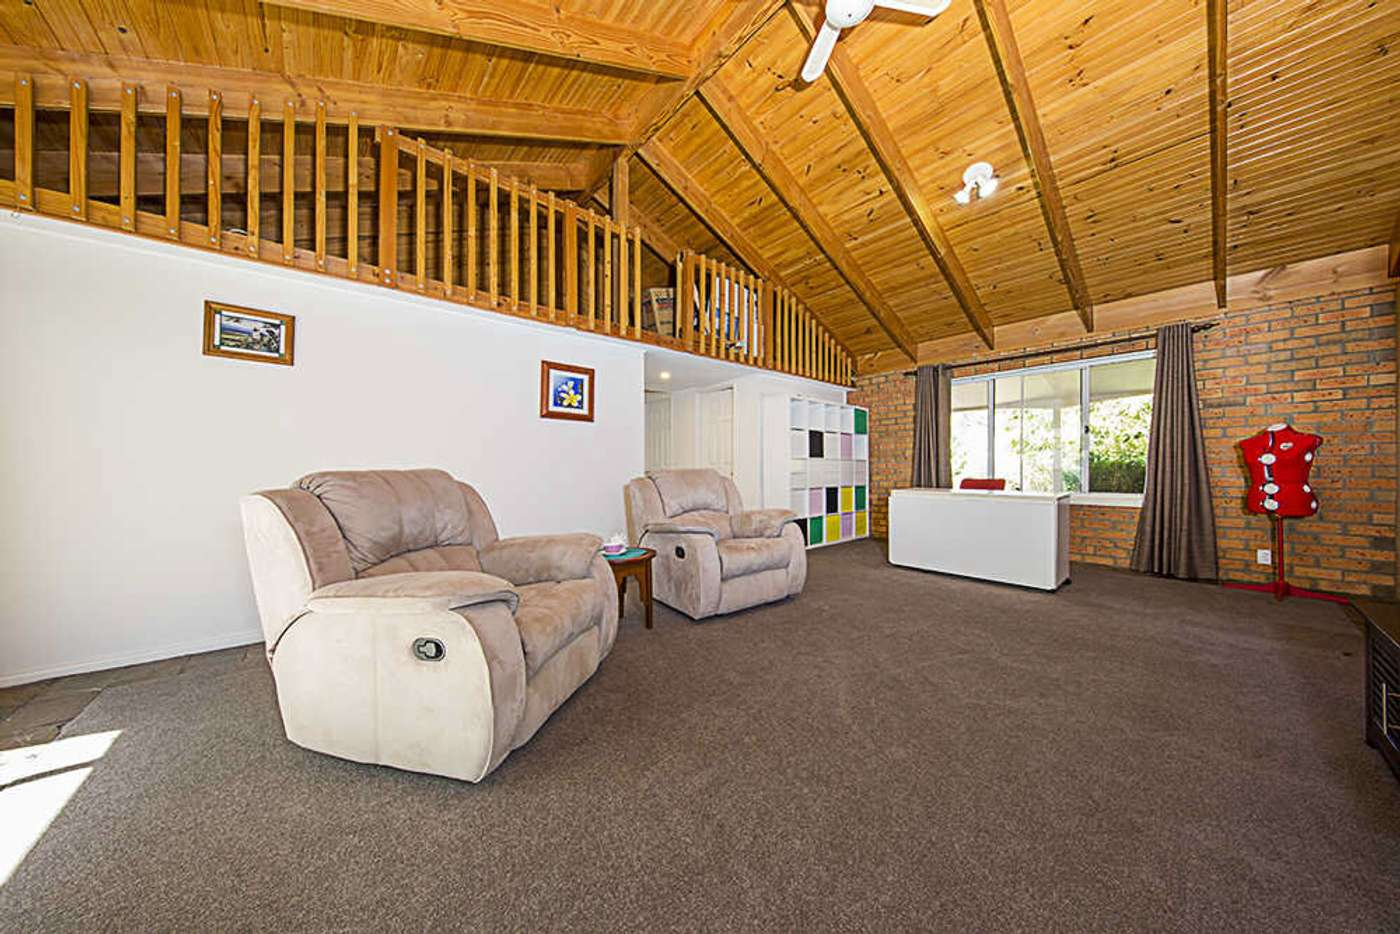 Sixth view of Homely house listing, 197 Marked Tree Road, Gundaroo NSW 2620